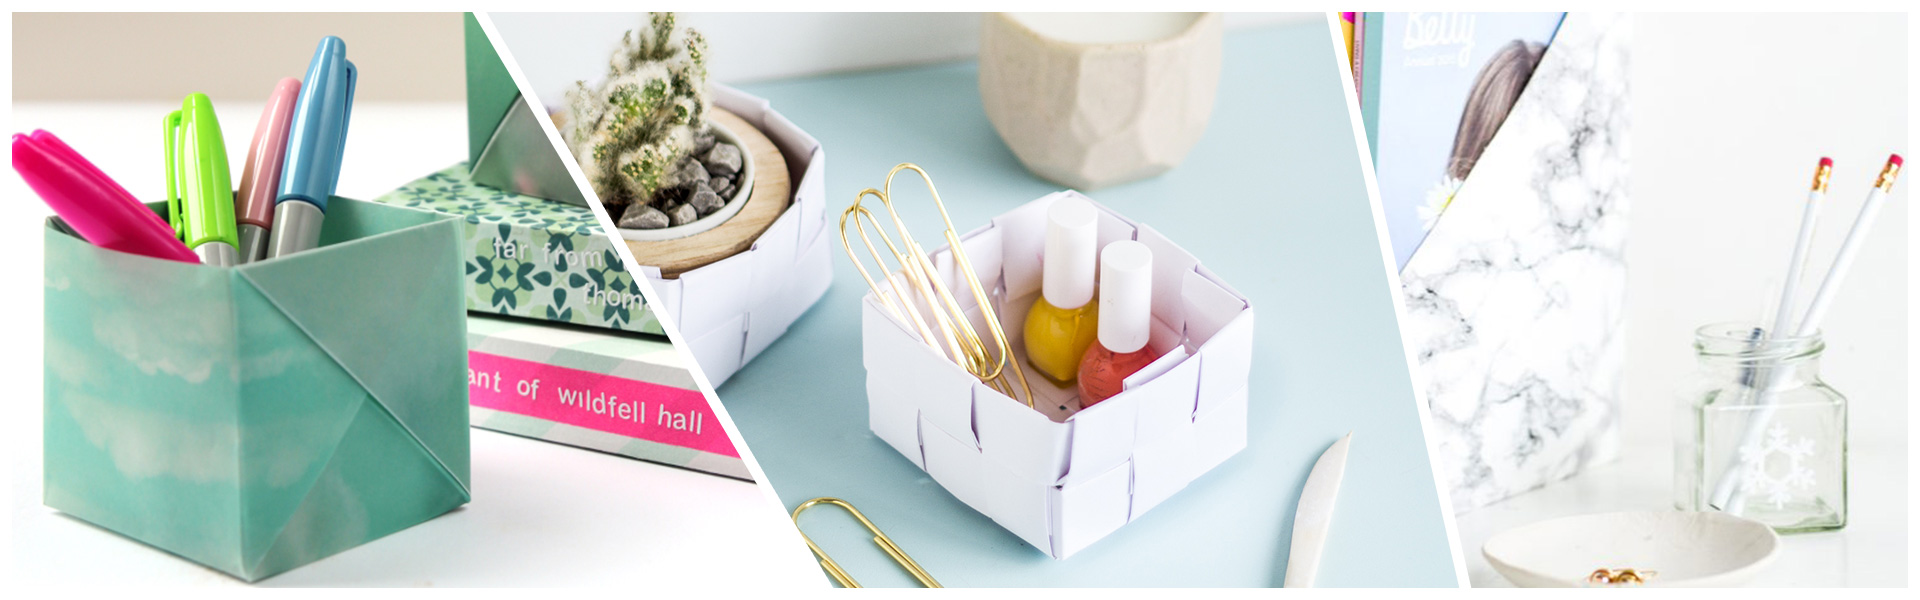 5 DIY Stationery Storage Ideas for Your Desk